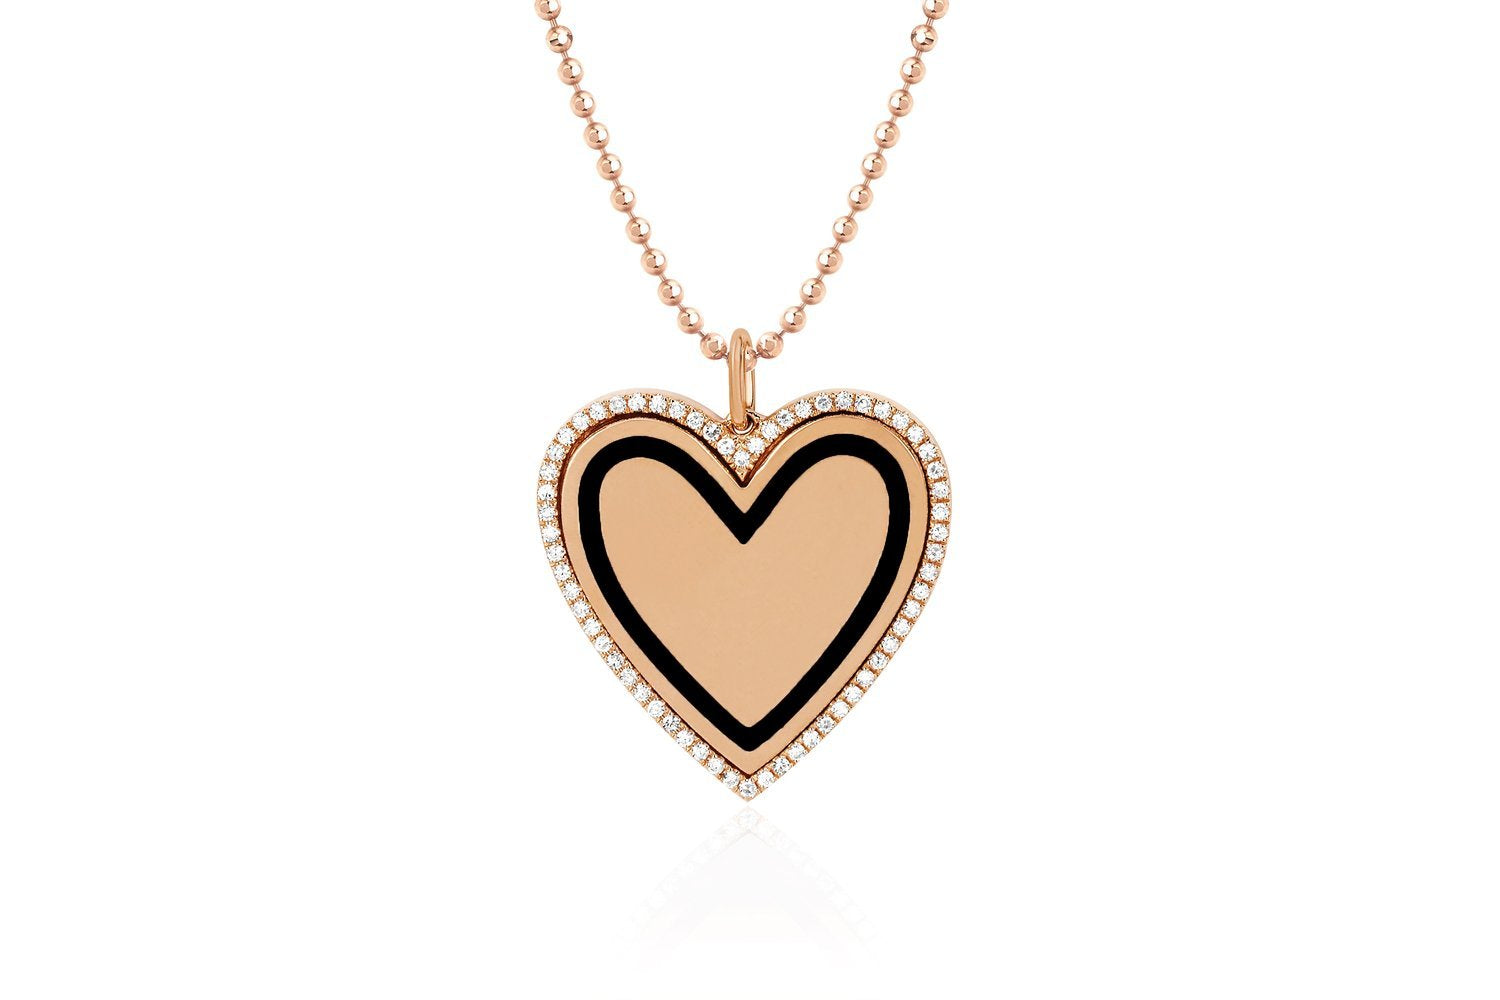 Diamond and Black Enamel Heart Necklace